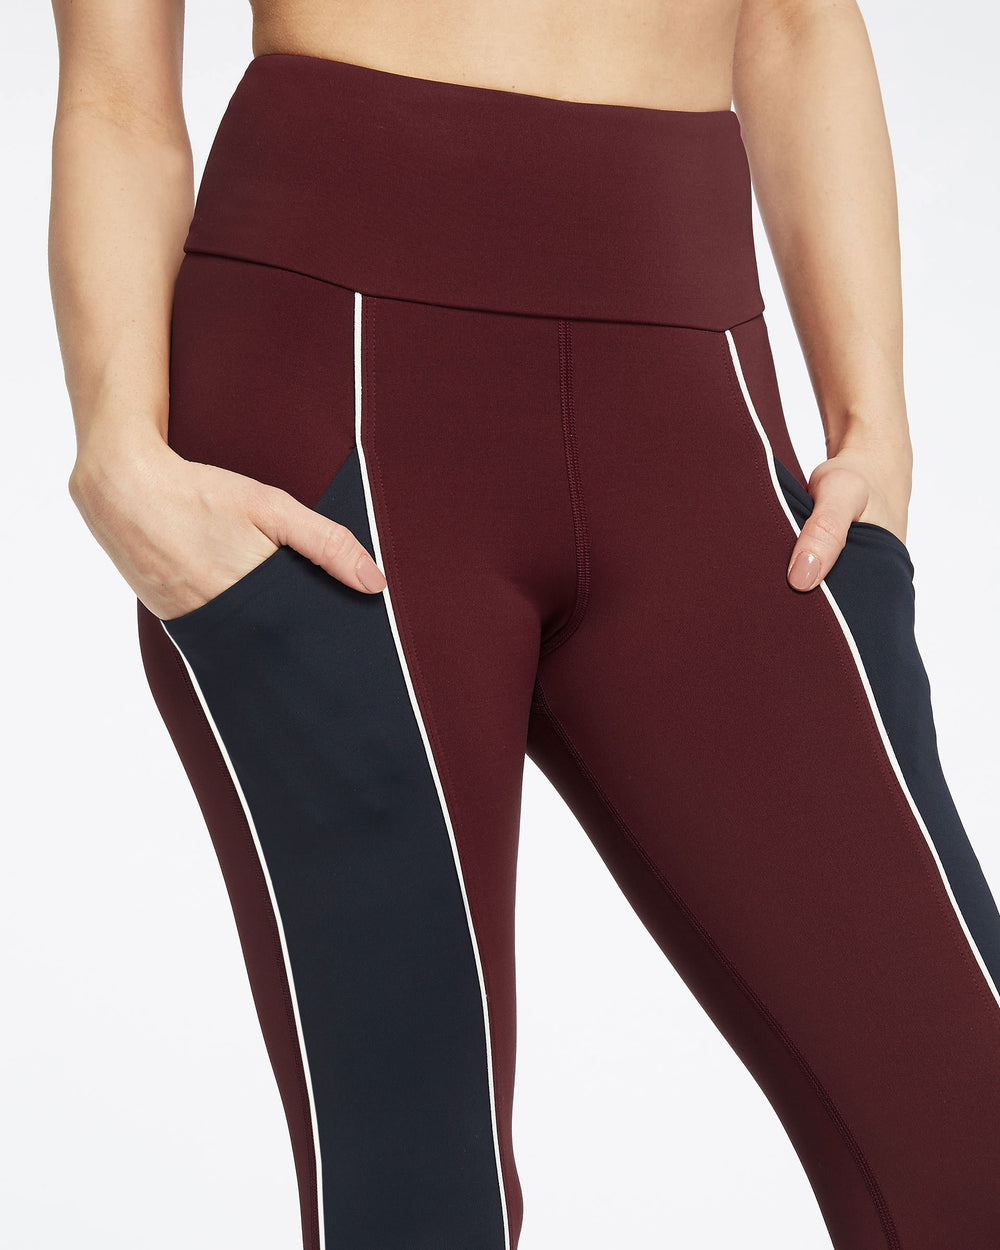 Gradient Pocket Legging - Wine/Deep Sea Navy/White